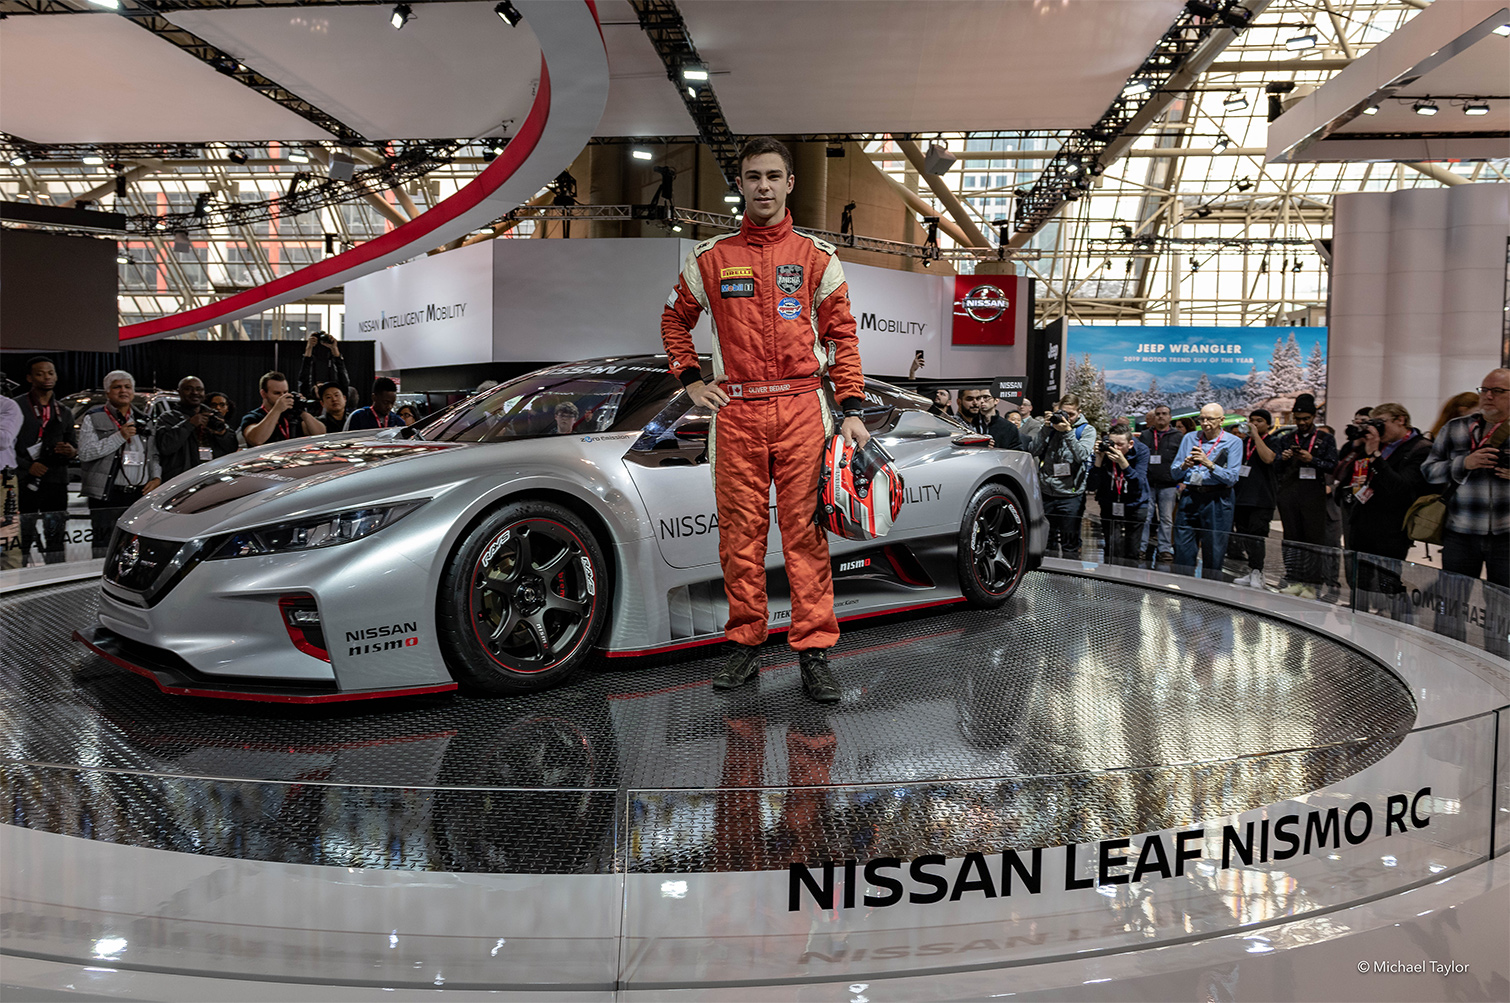 TrackWorthy - CIAS_Nissan Leaf Nismo RC under wrap and unveiling ceremony-4